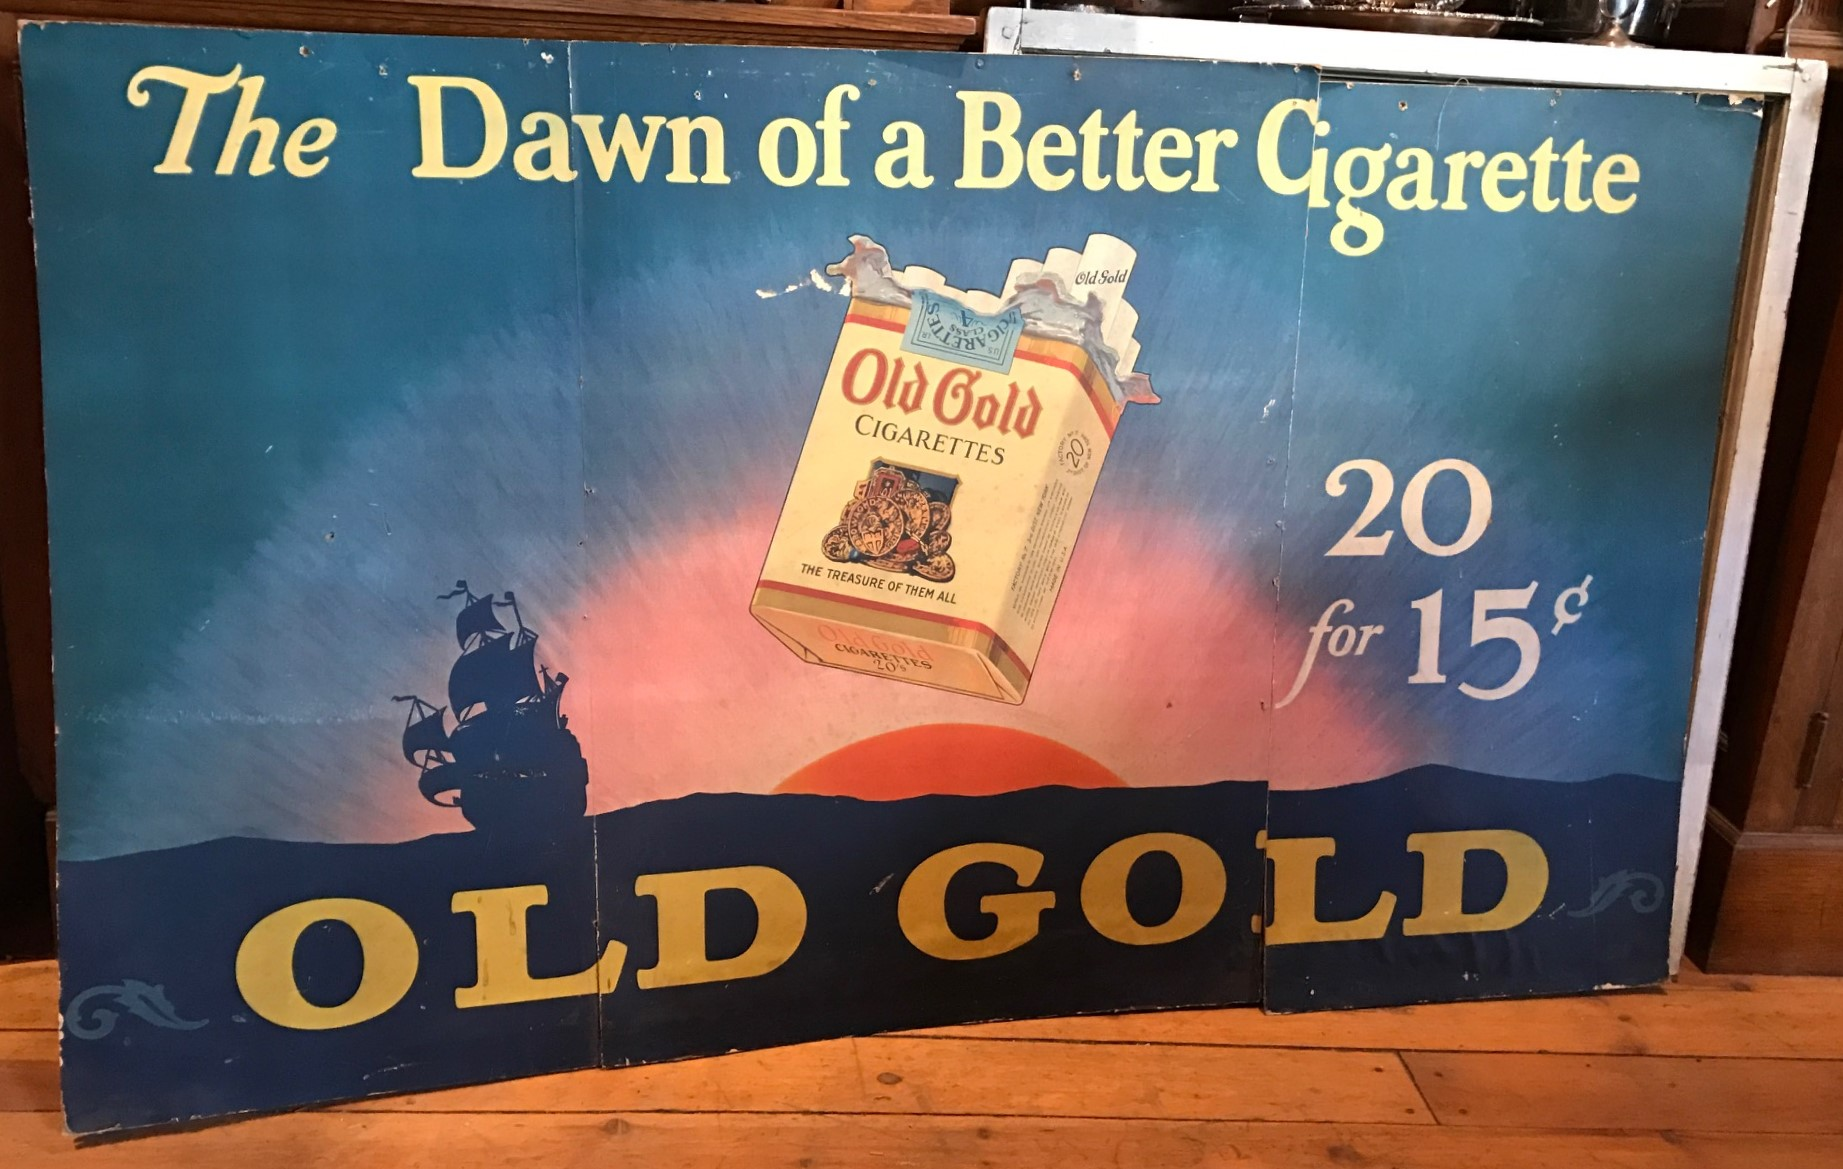 Old Gold Cigarette store advertising sign